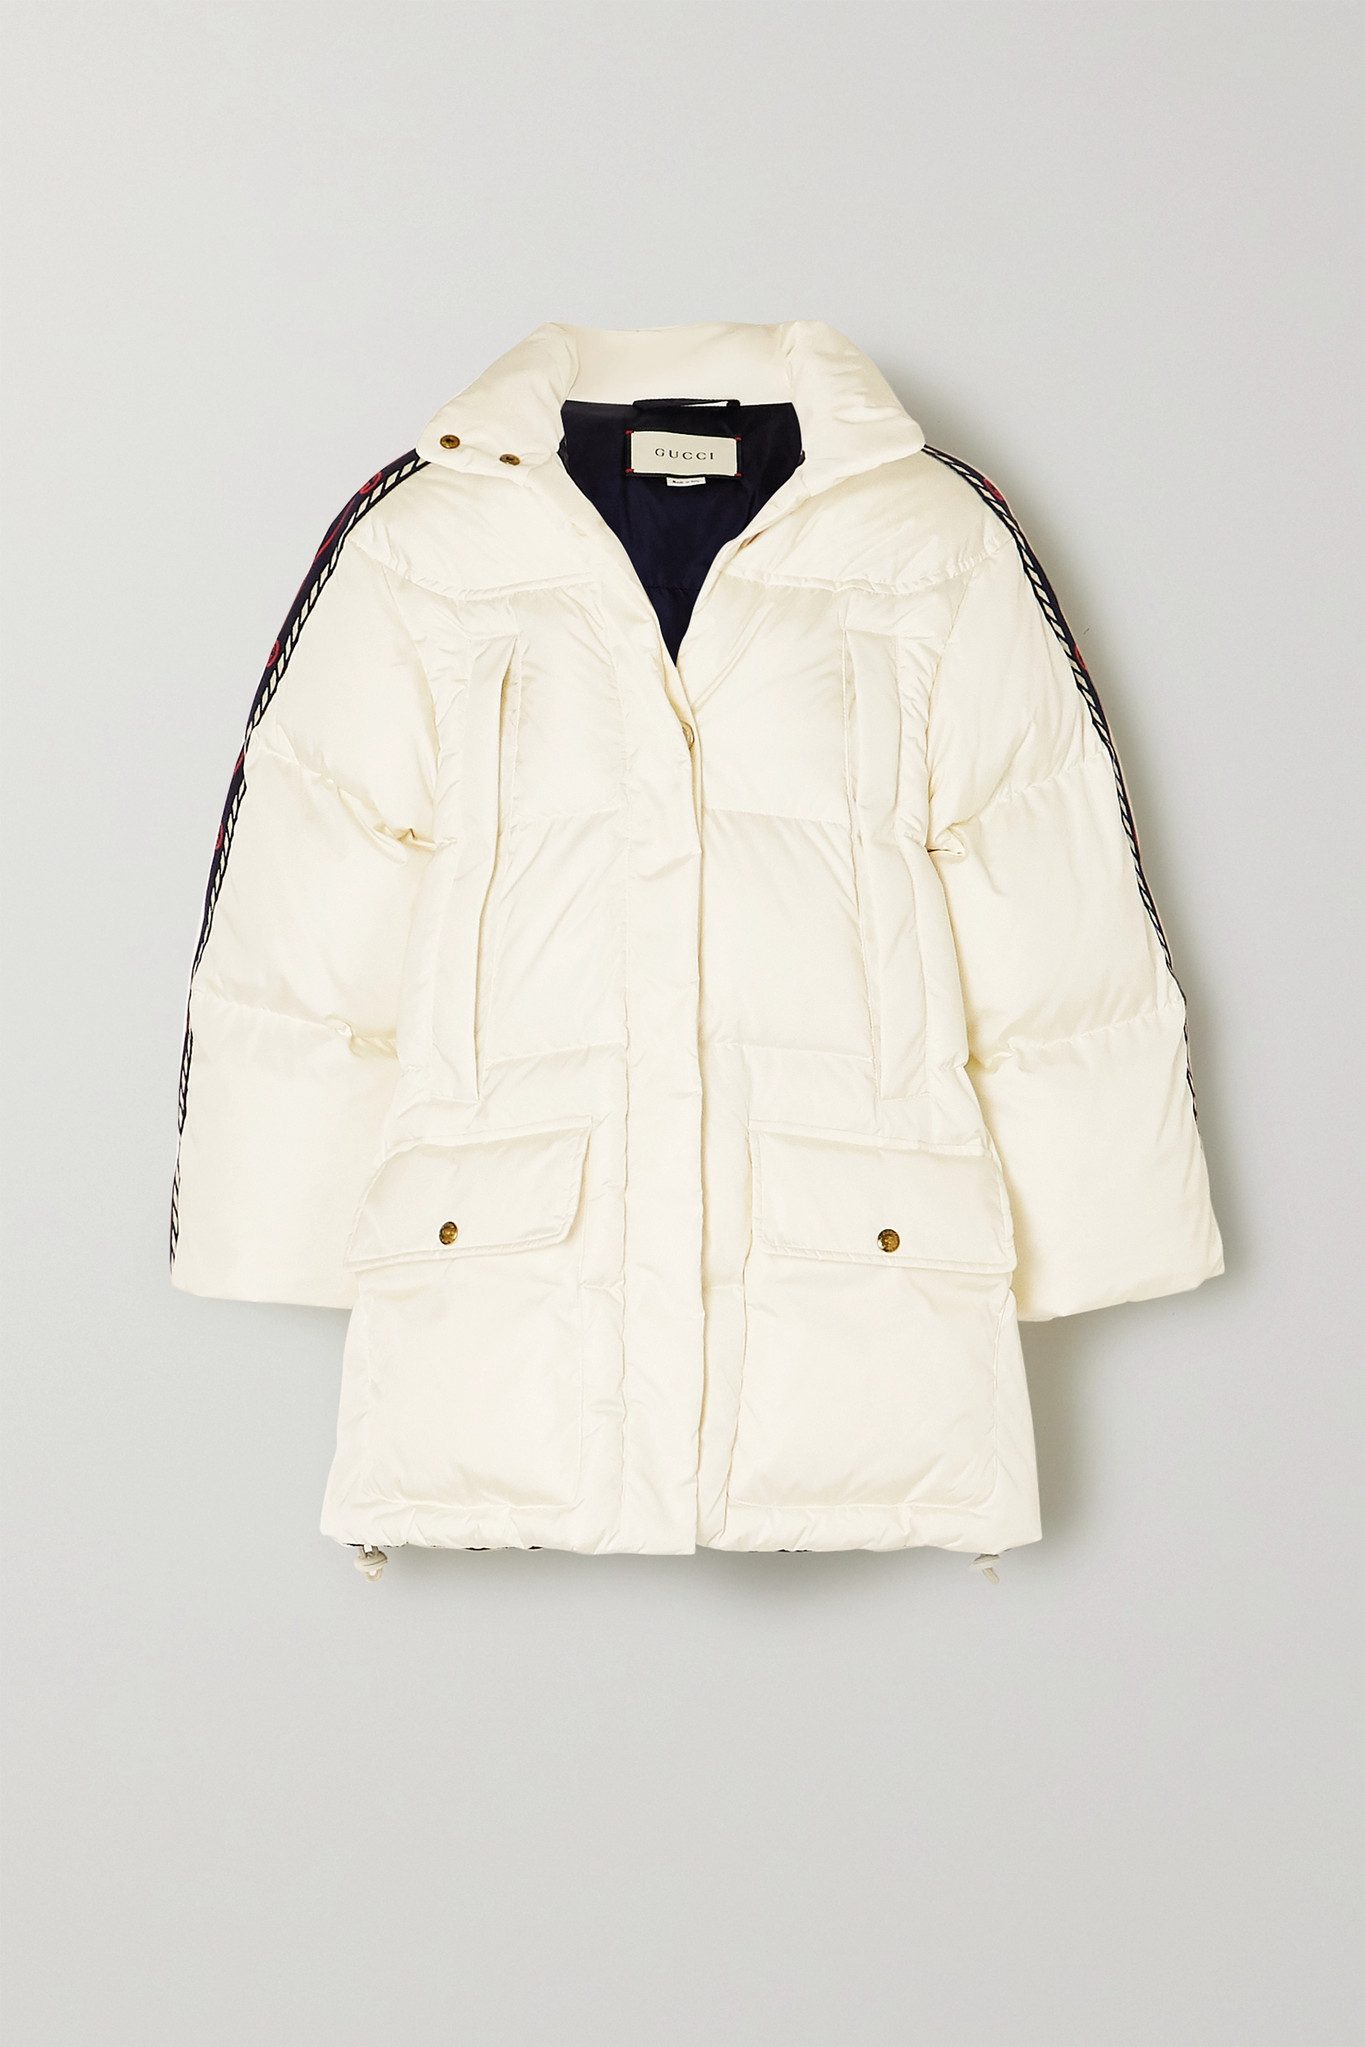 GUCCI - Oversized Webbing-trimmed Quilted Shell Down Jacket - Ivory - IT40